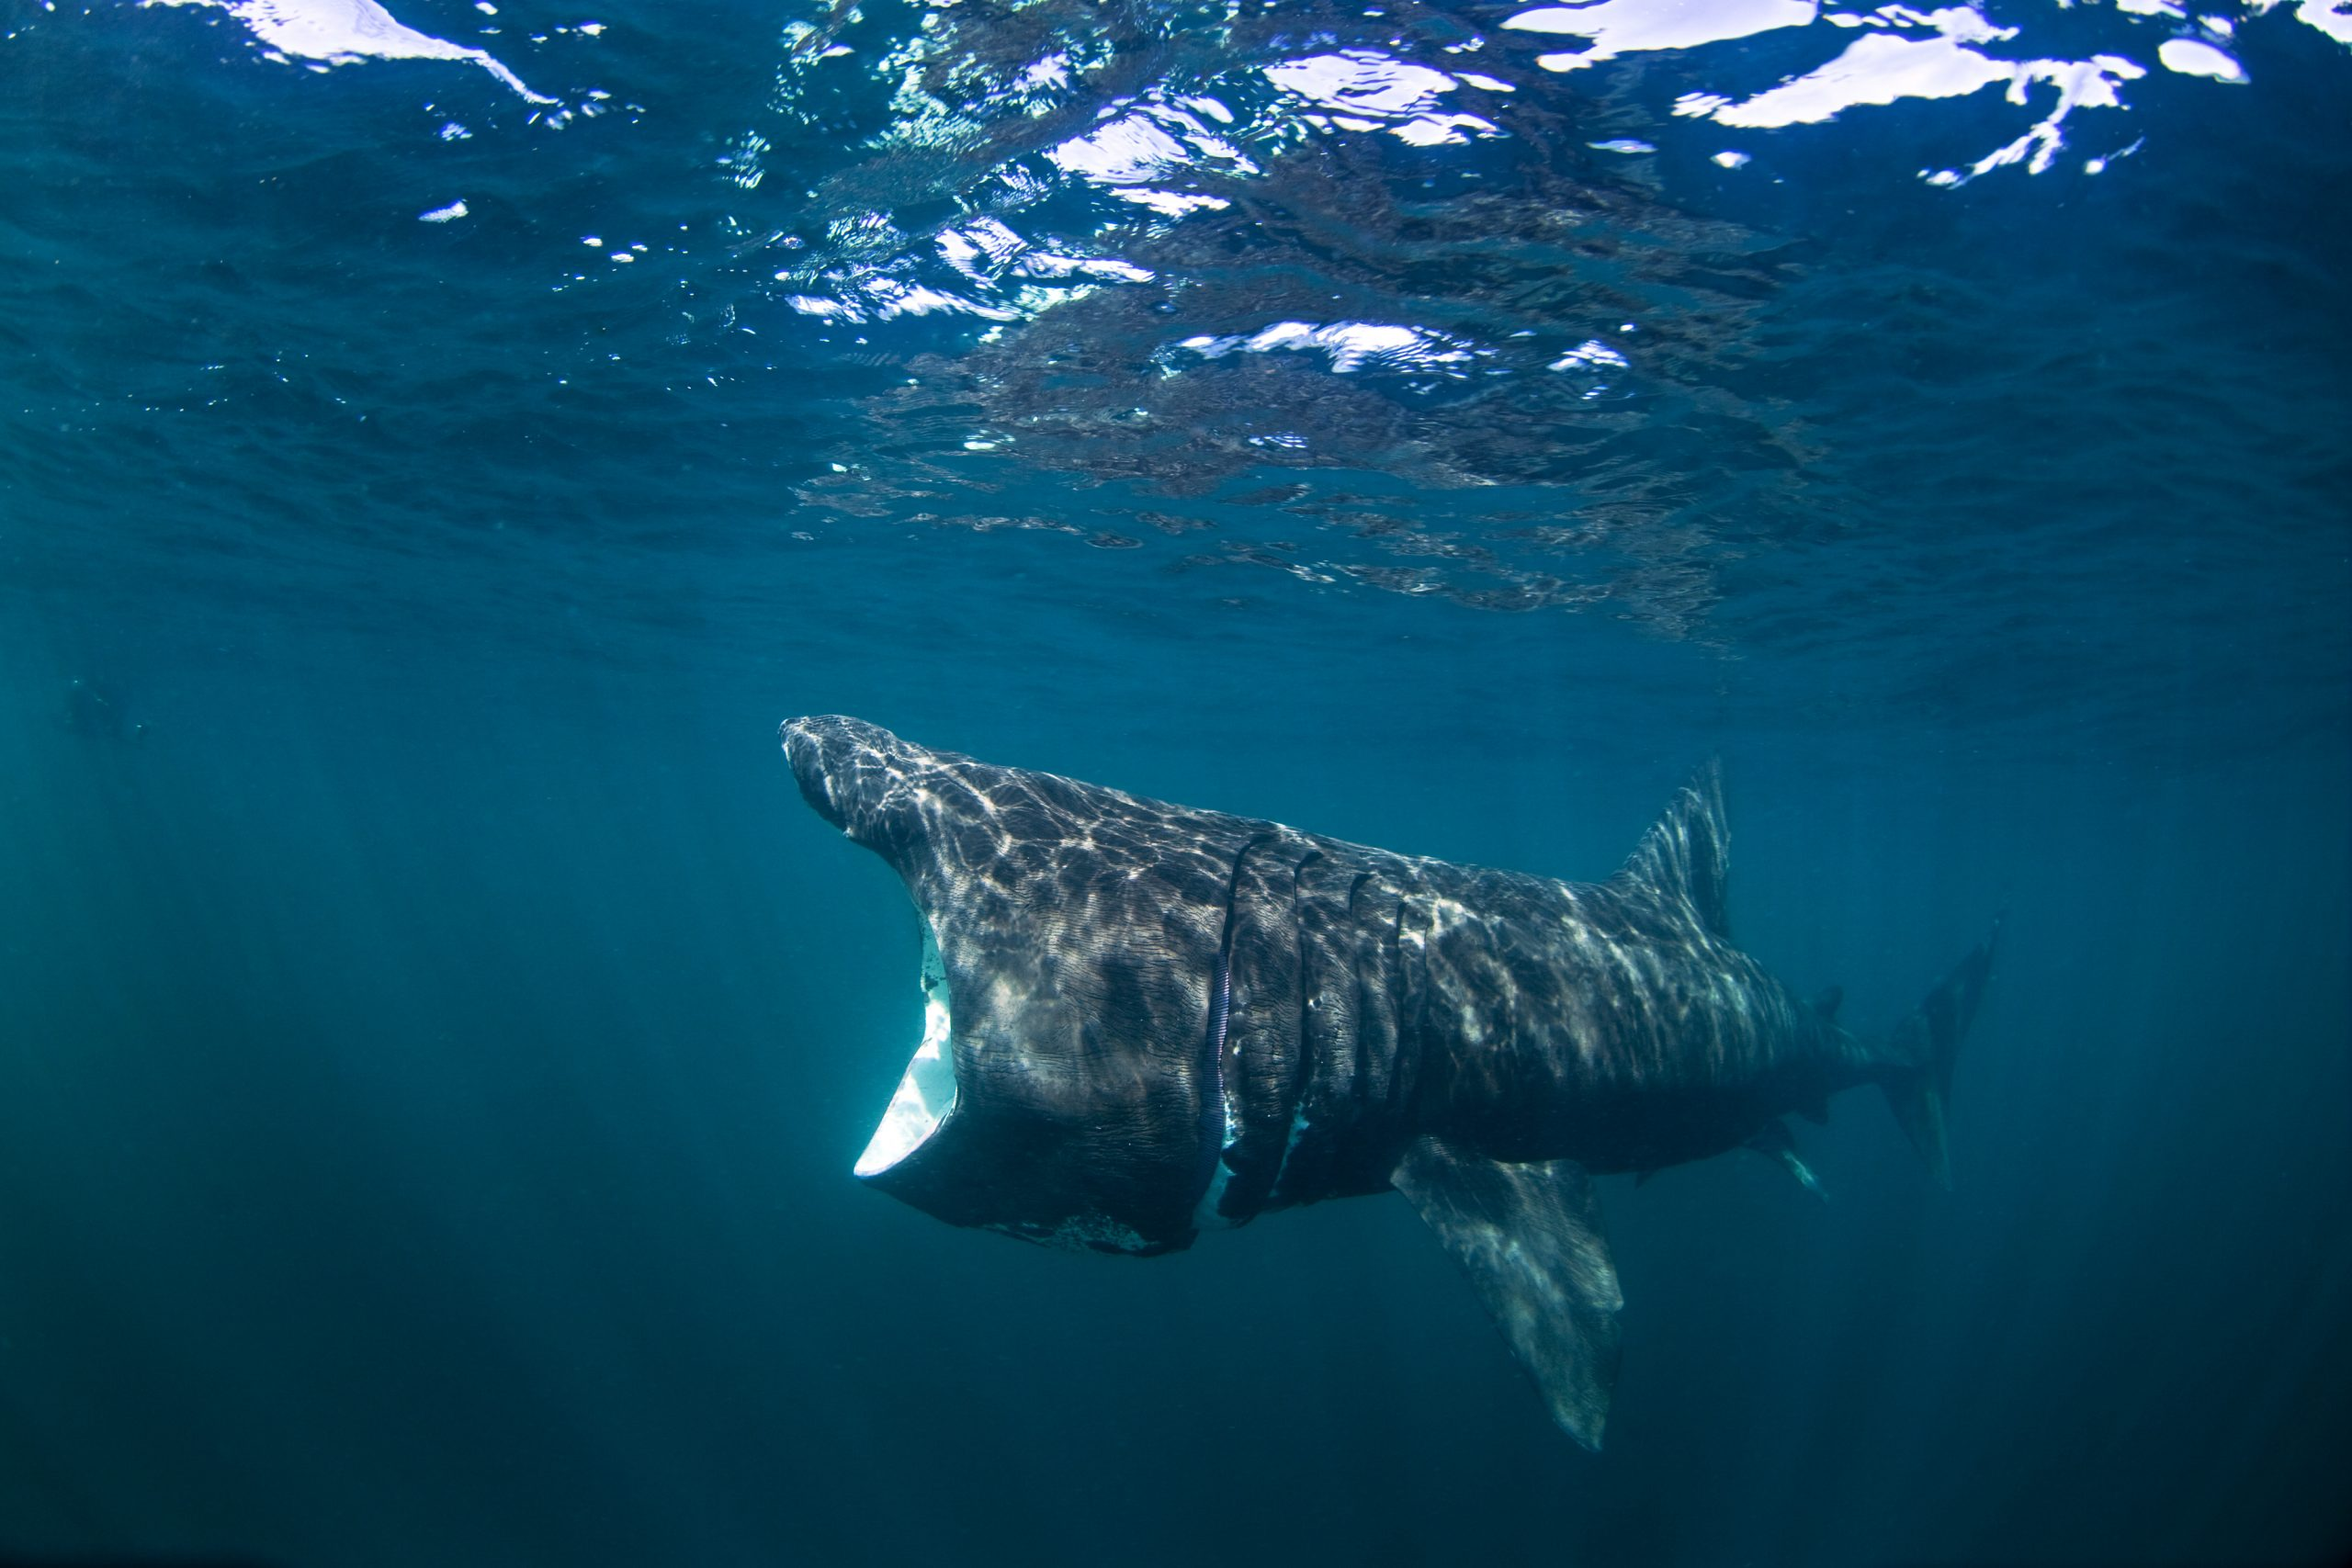 basking shark with open mouth